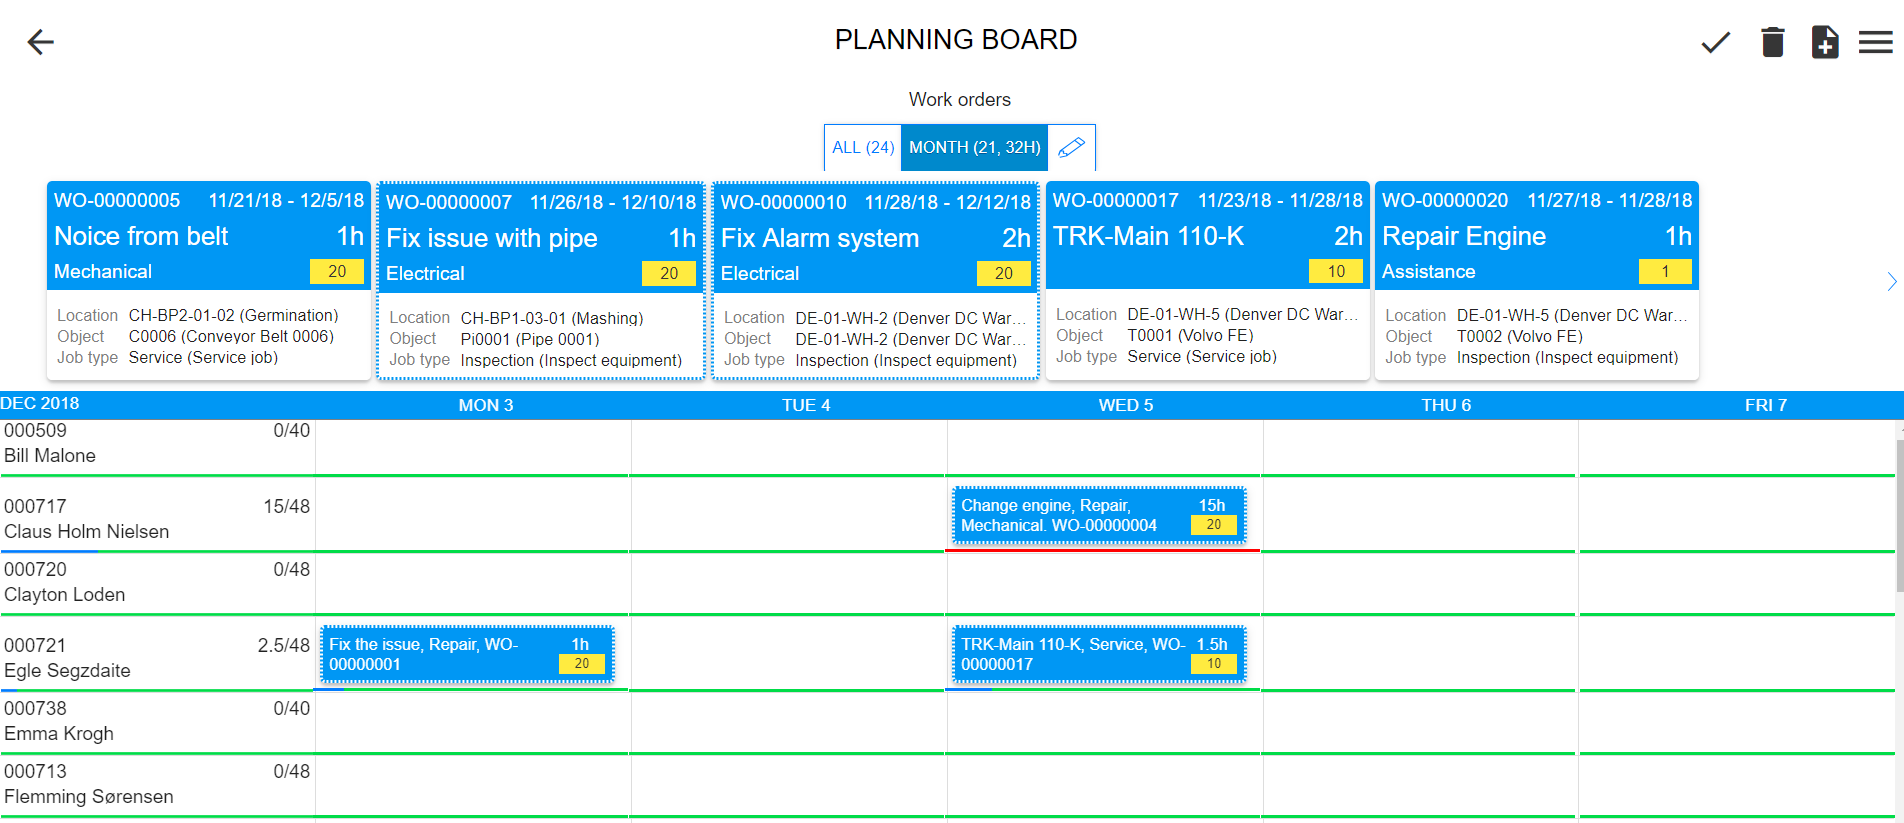 Planning Board for maintenance